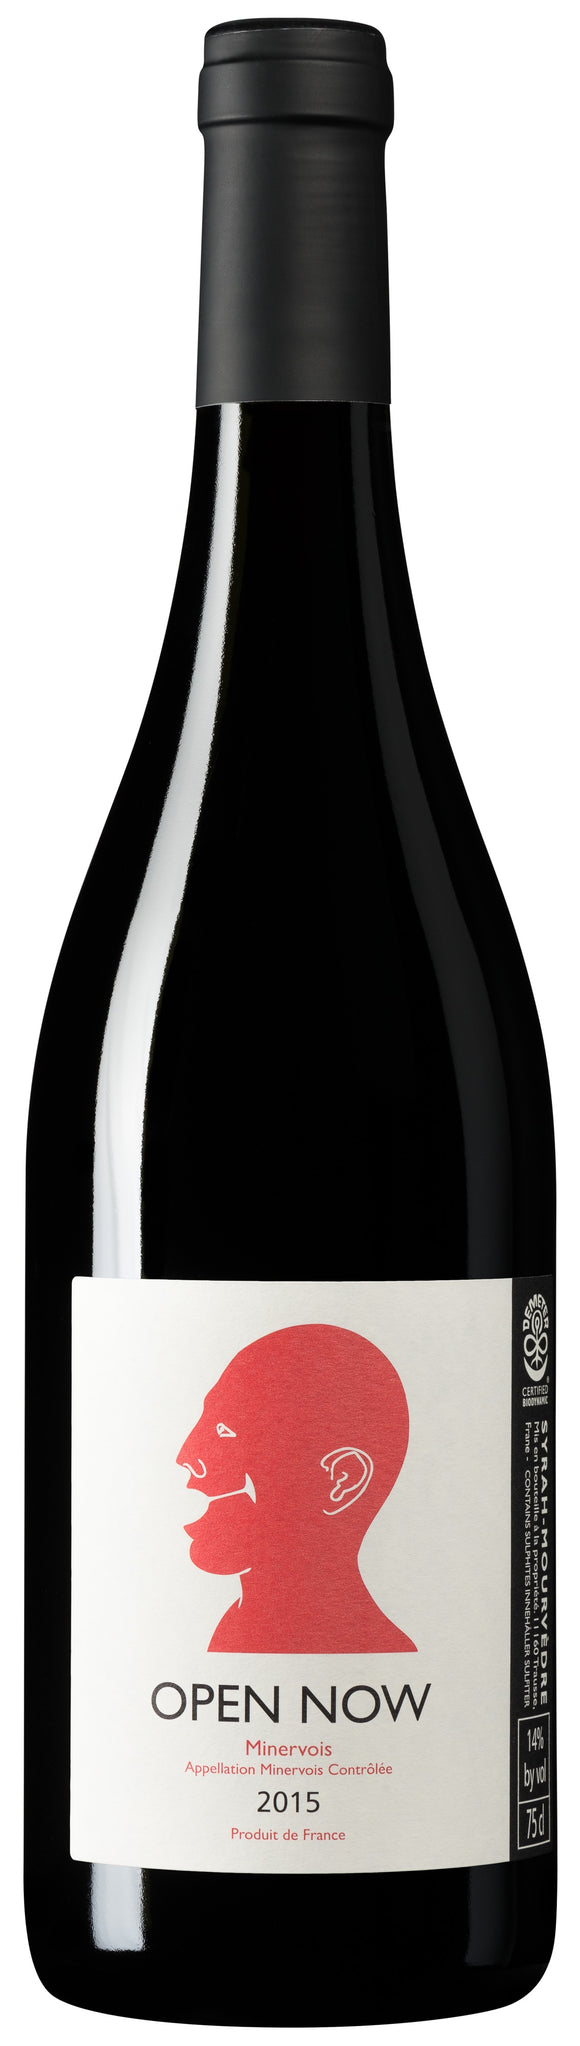 Domaine de Chamans / Open Now / 750mL